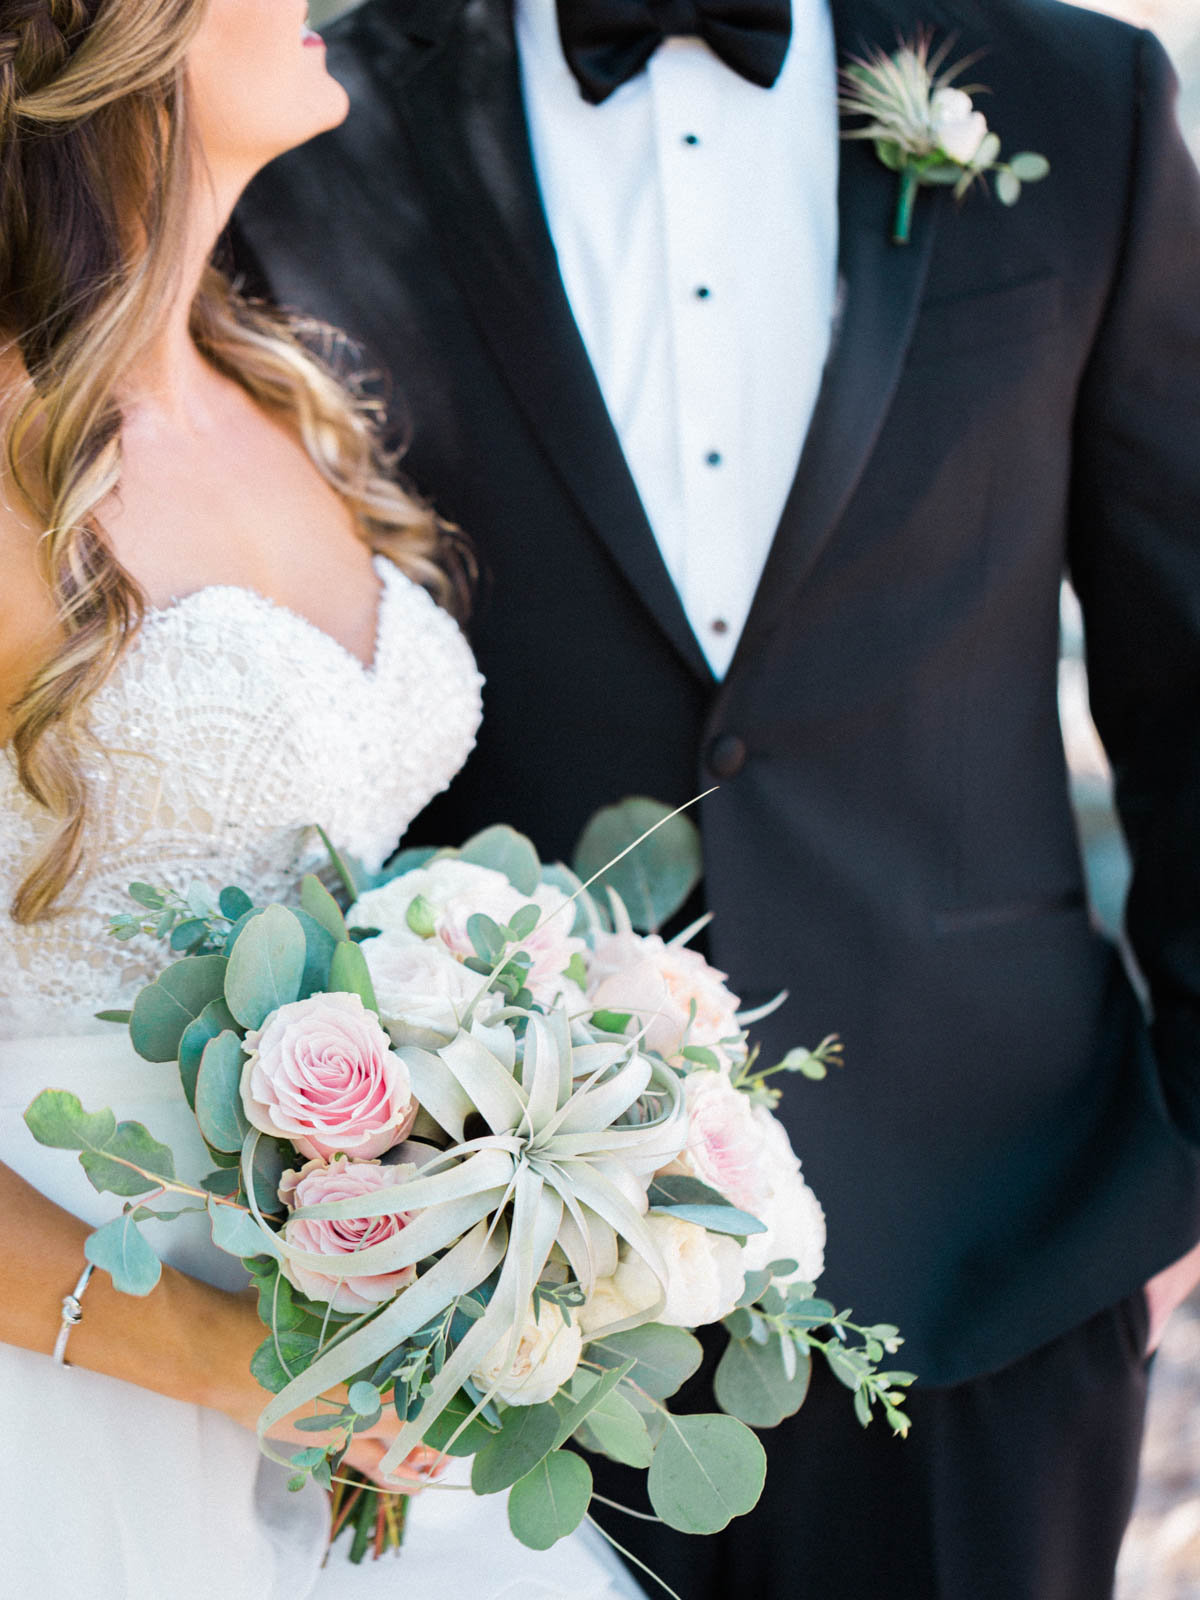 Amazing blush bouquet with air plants and greenery by Alexis Grace Florals captured by Tucson Wedding Photographers Betsy & John